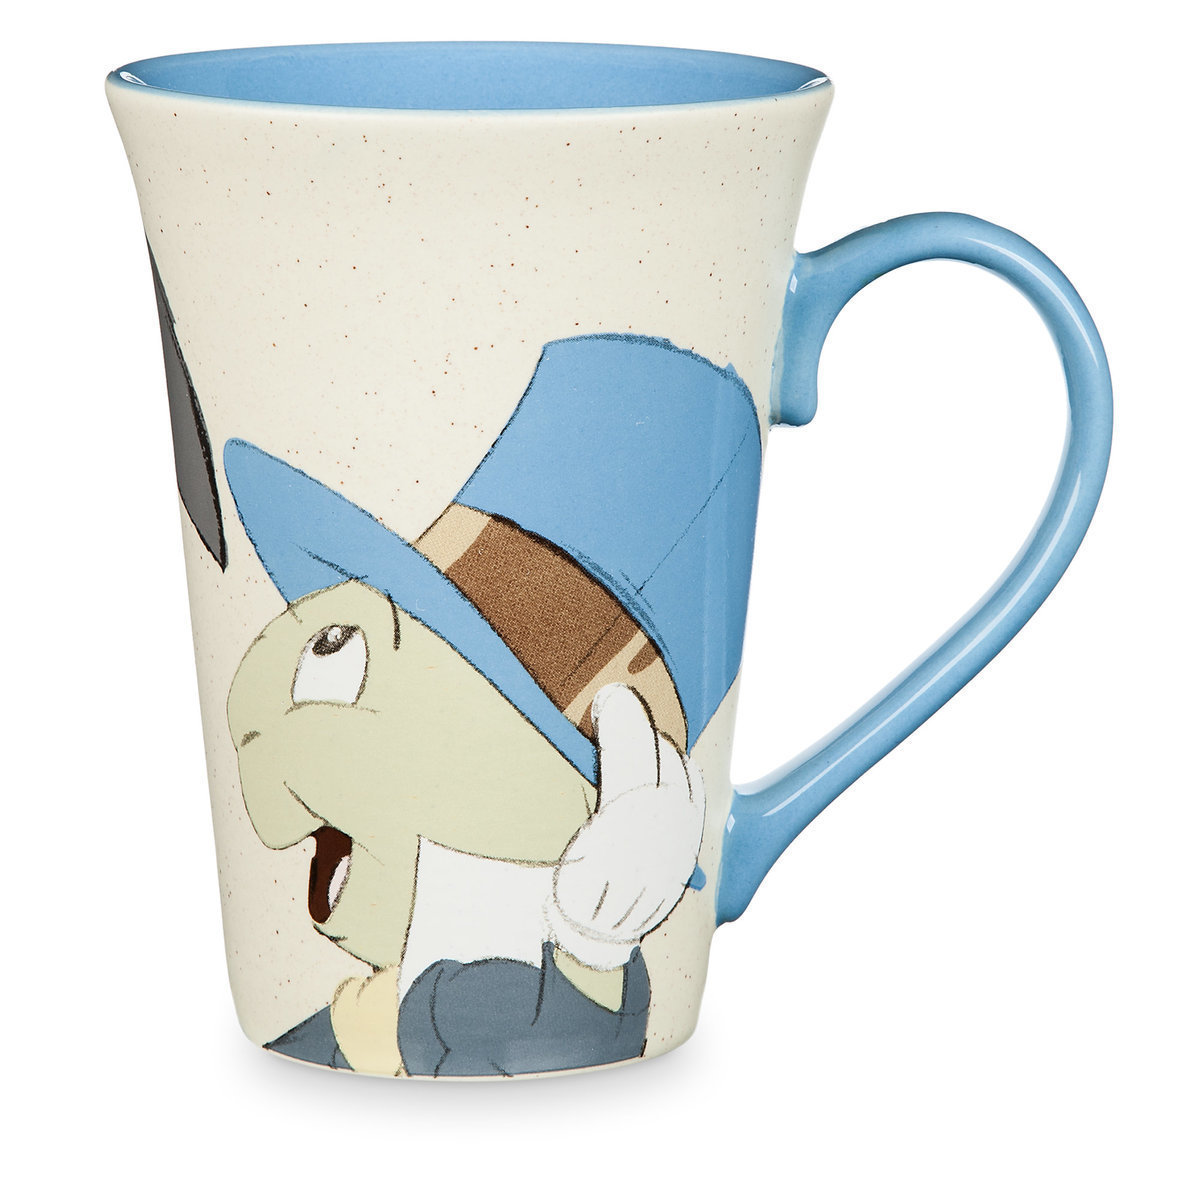 Pinocchio and Jiminy Cricket Mug